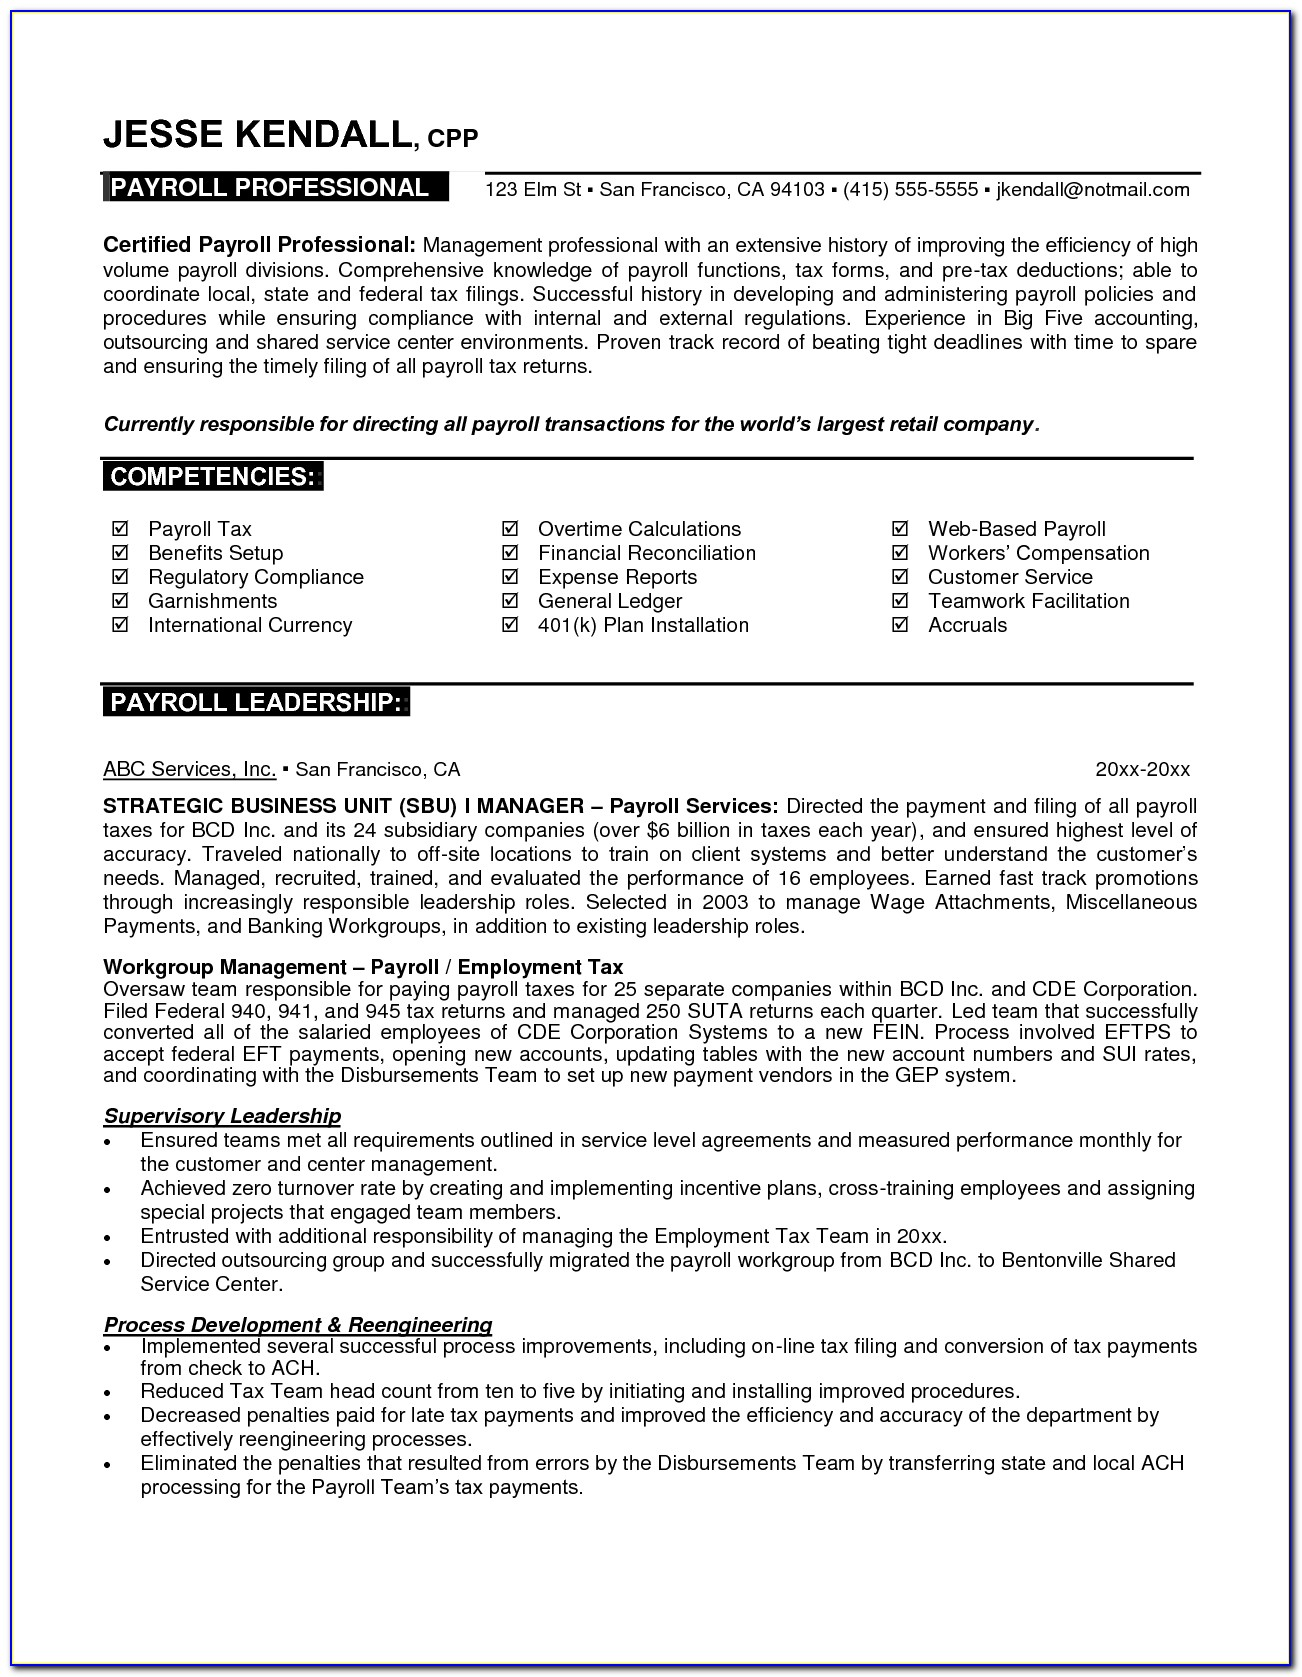 Sample Professional Resume Curriculum Vitae Resume Cv Examples The Most Sample Resumes For Professionals